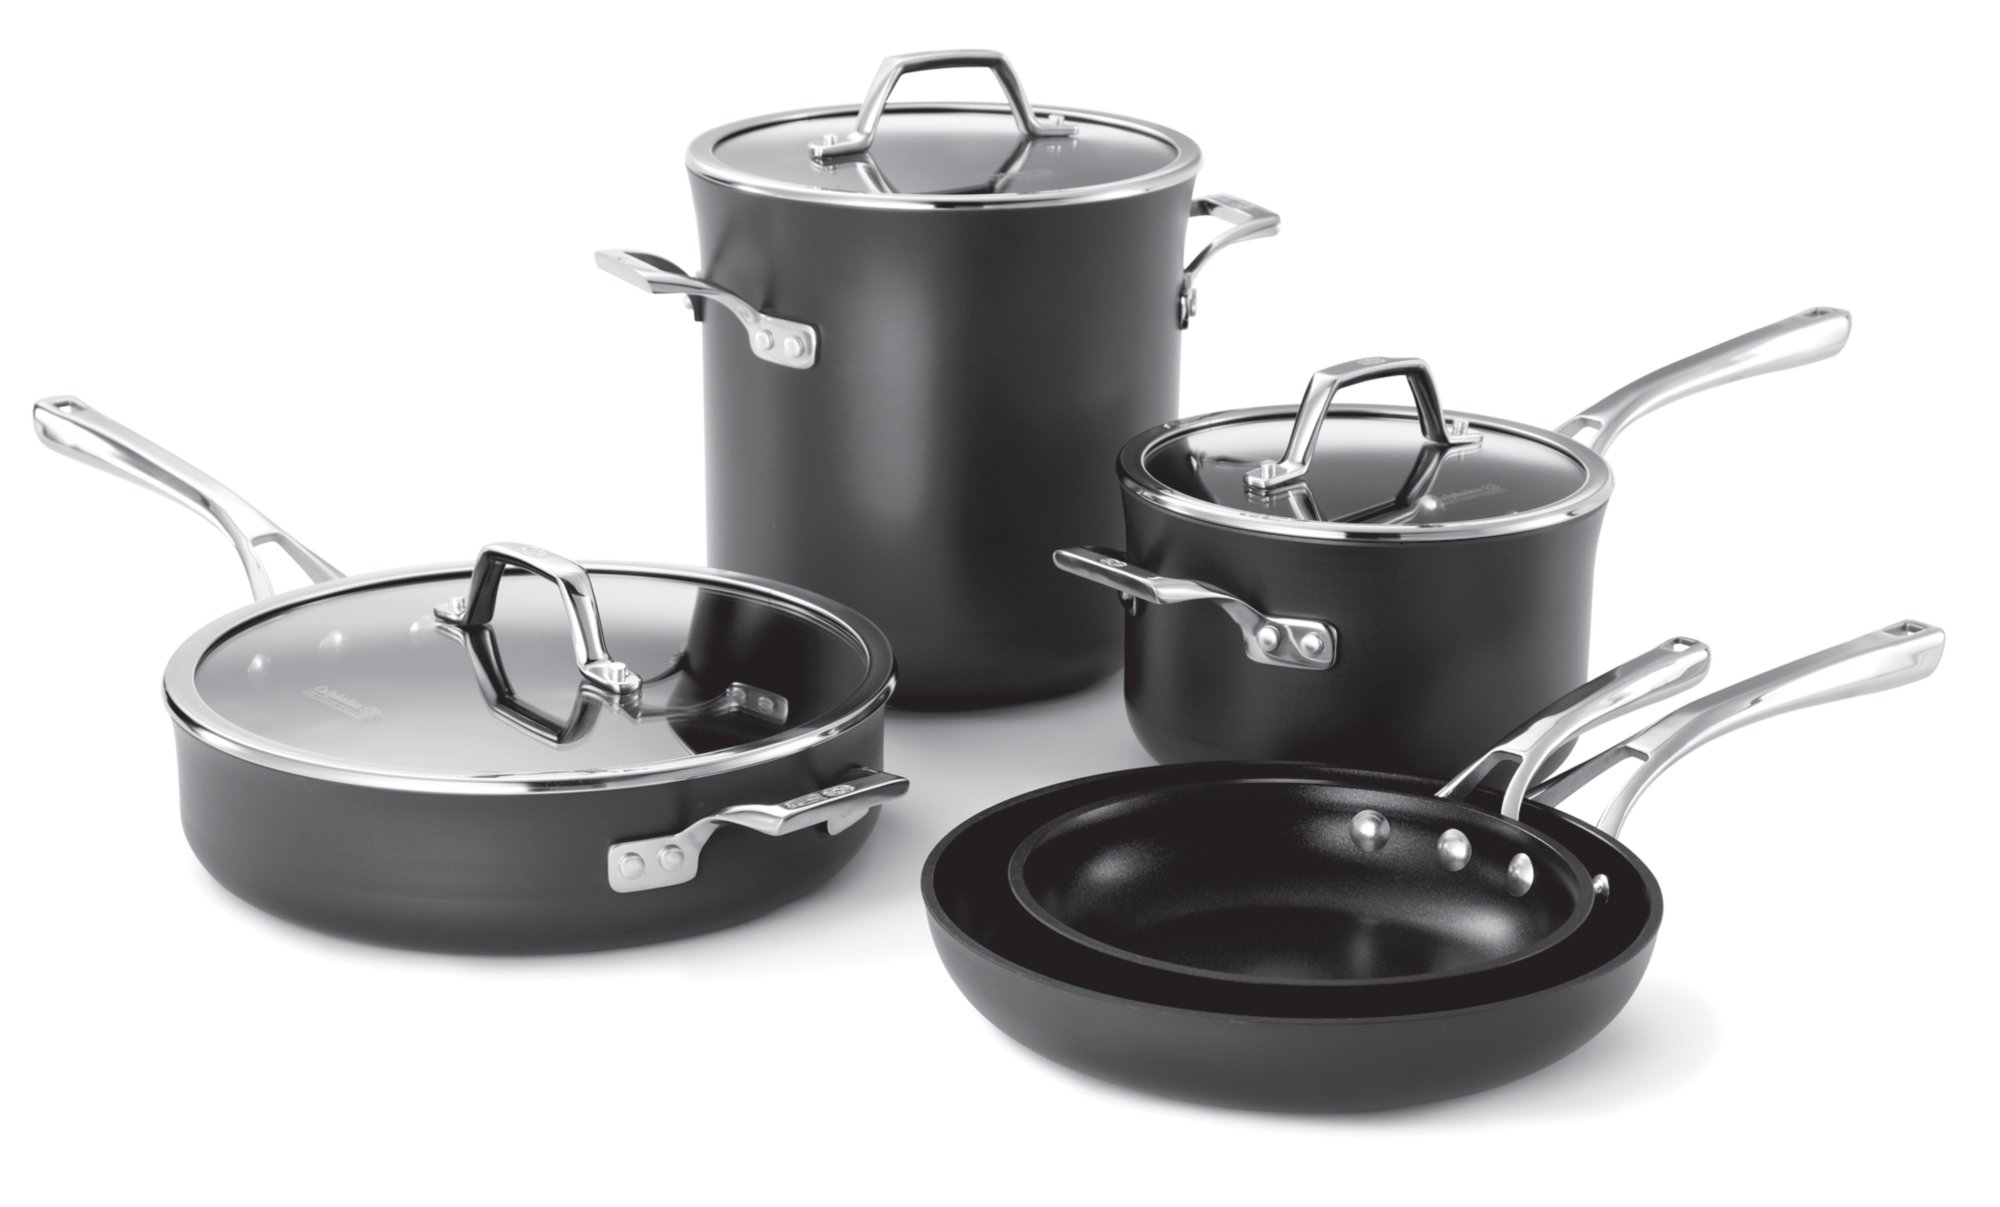 Calphalon Williams-Sonoma Elite Nonstick 8-pc. Cookware Set